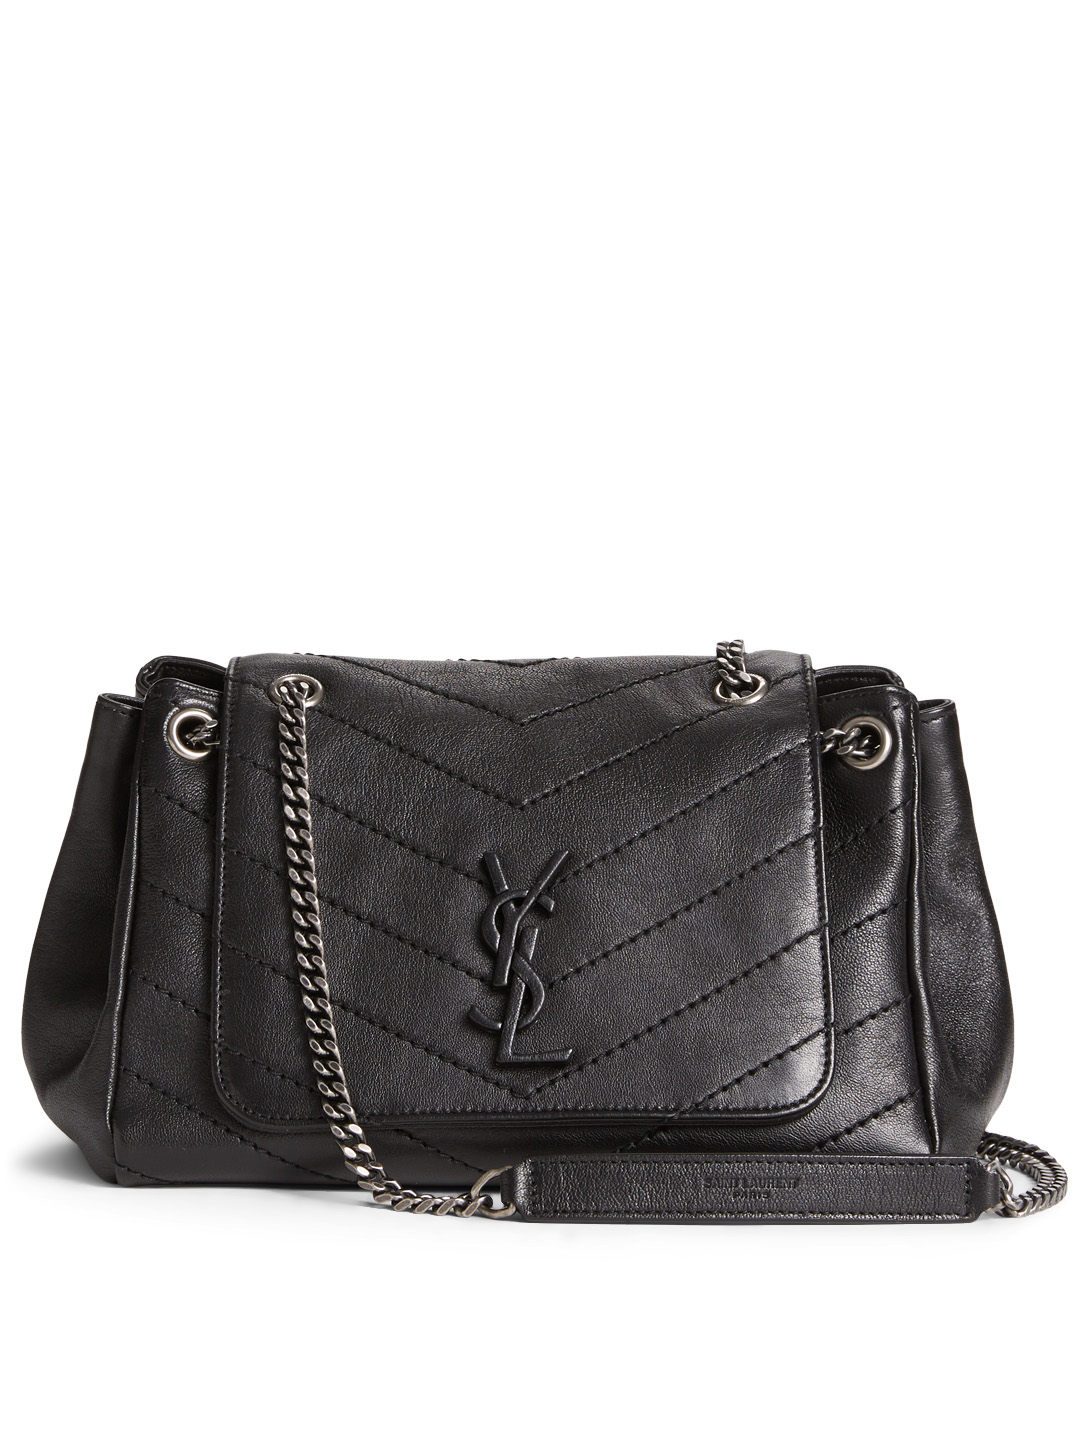 e1313773c67e70 SAINT LAURENT Medium Nolita Monogram Leather Bag | Holt Renfrew